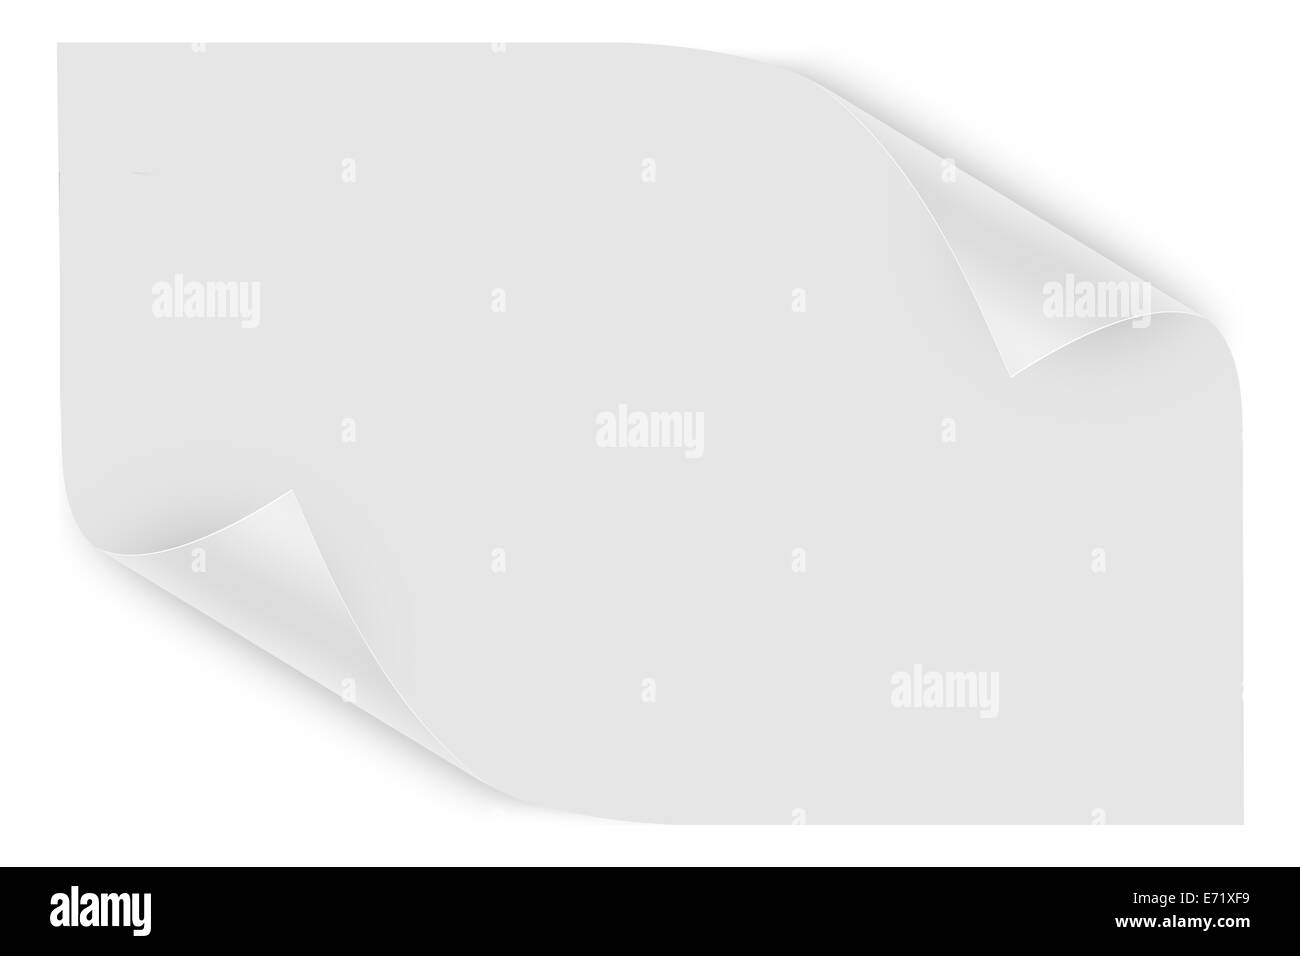 White blank sheet with page curls, isolated on white background. - Stock Image